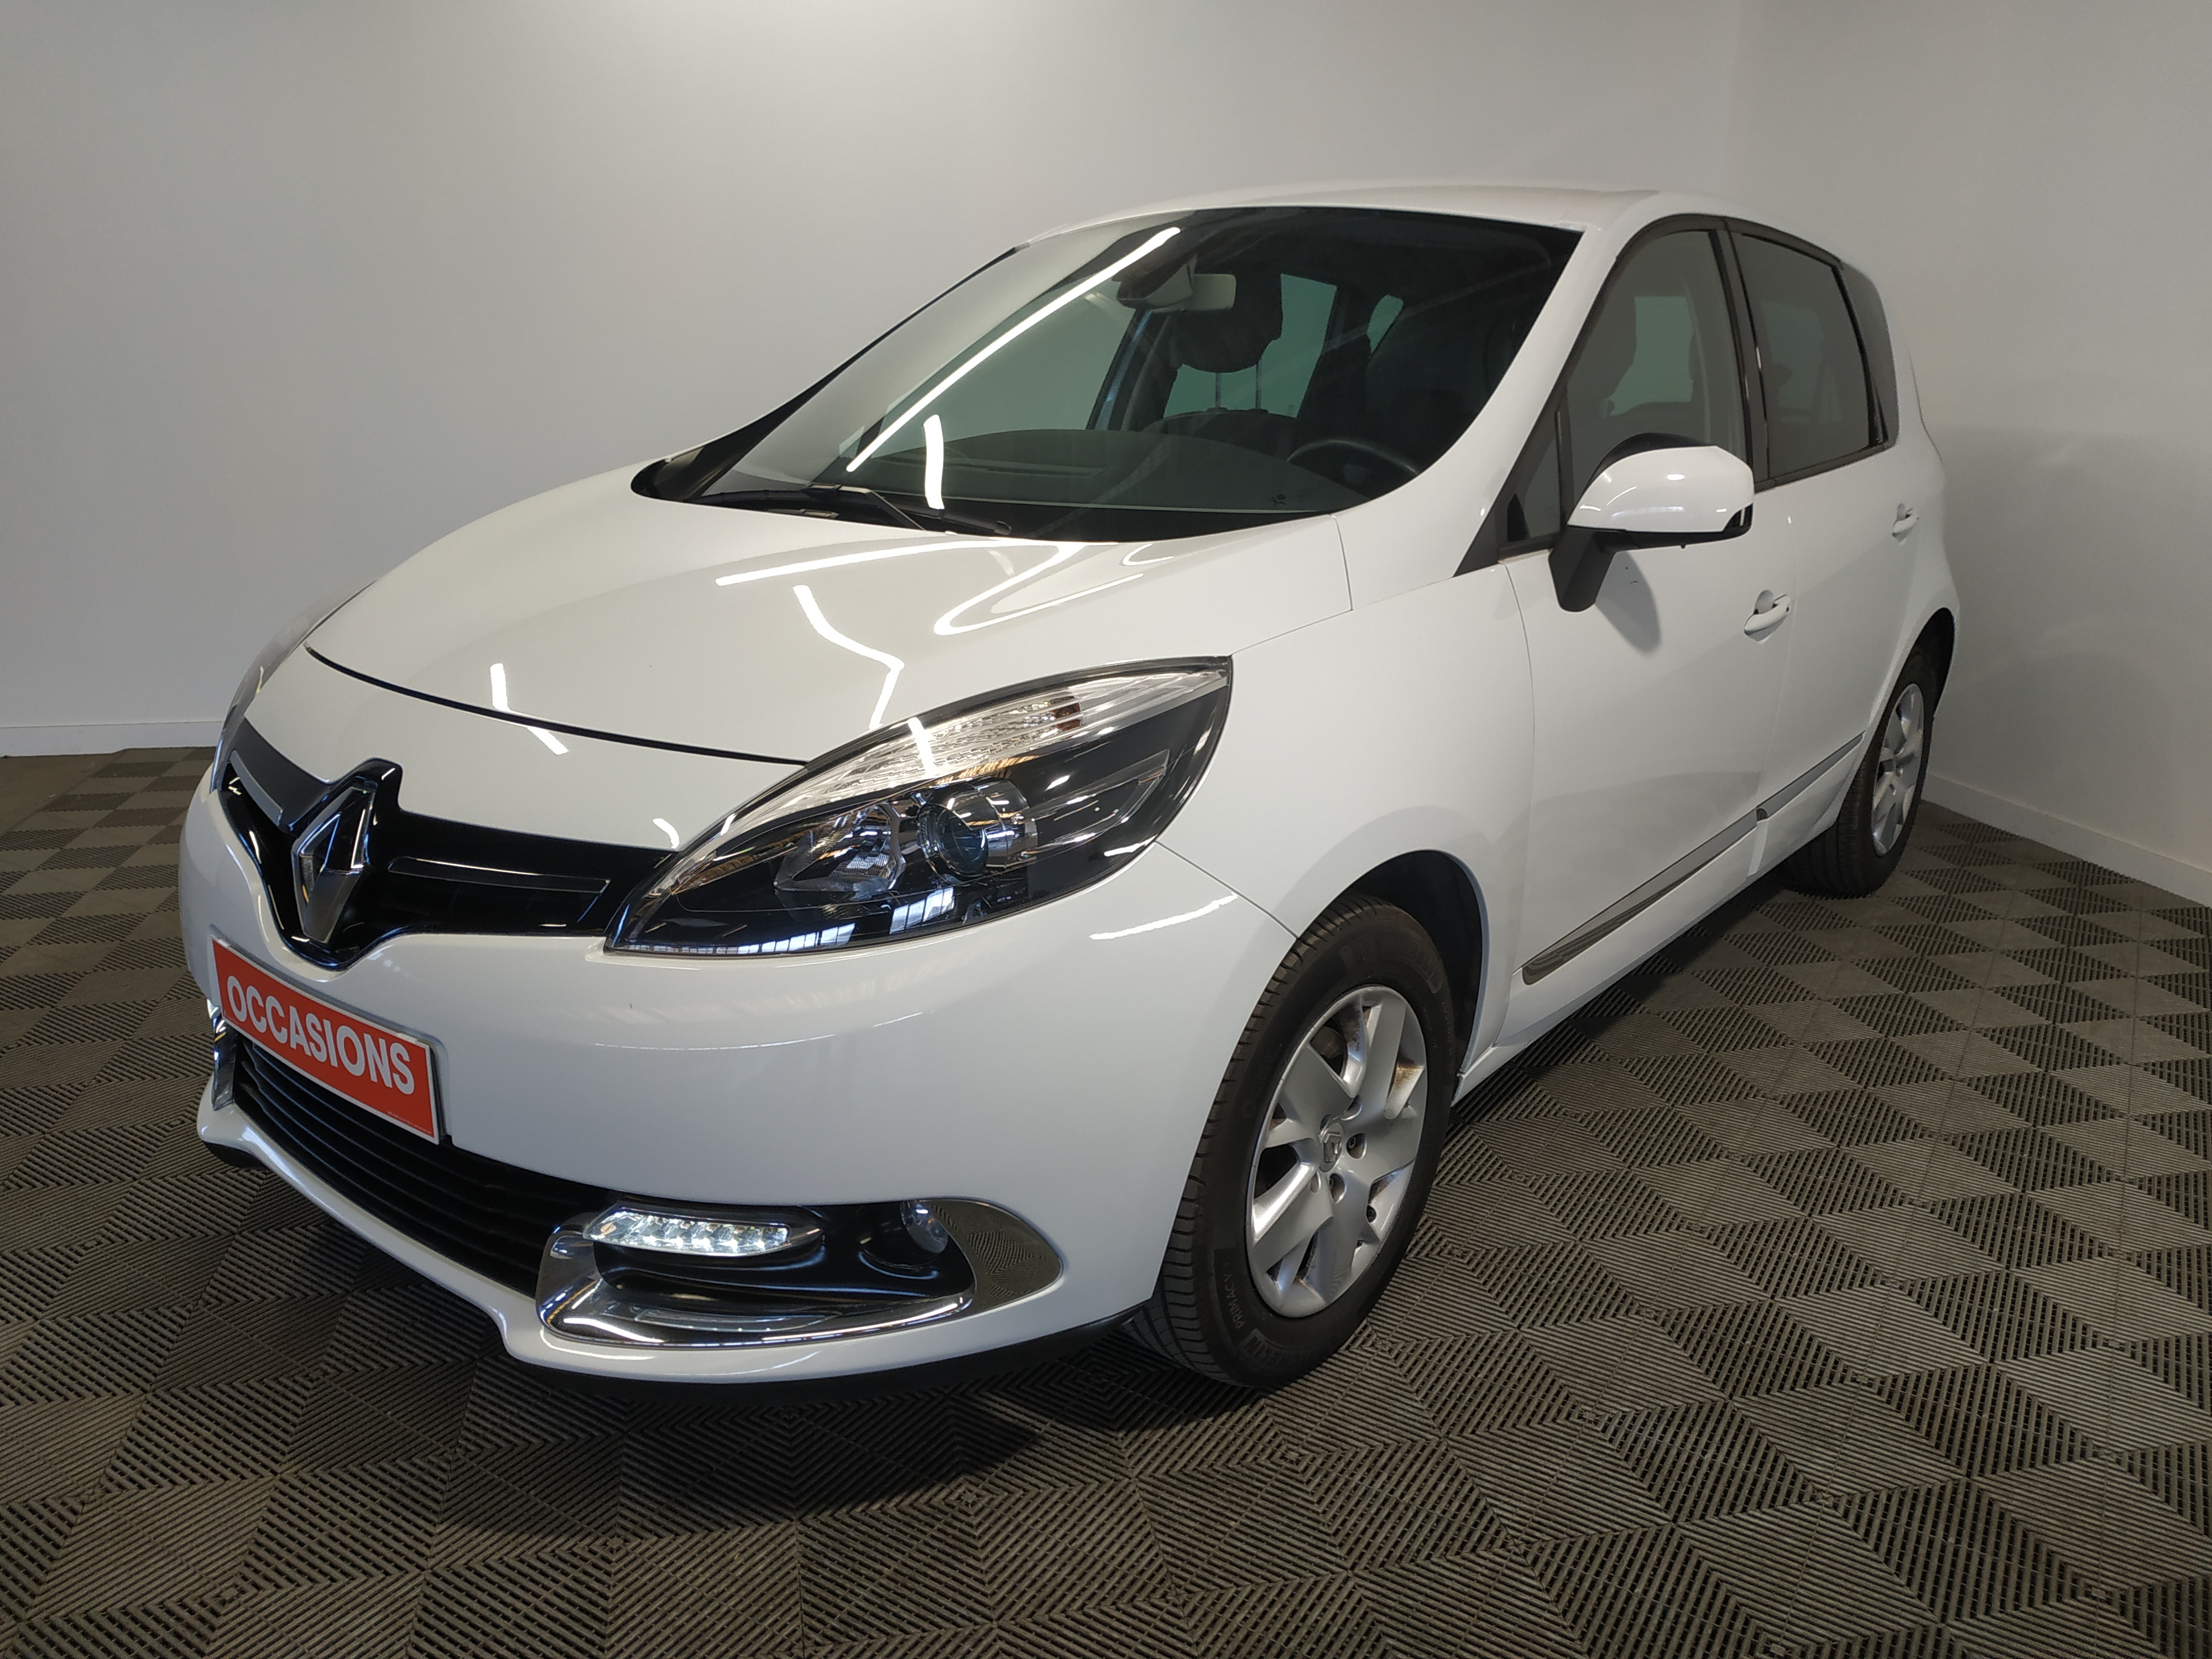 RENAULT SCENIC III BUSINESS dCi 110 Energy eco2 Business d'occasion